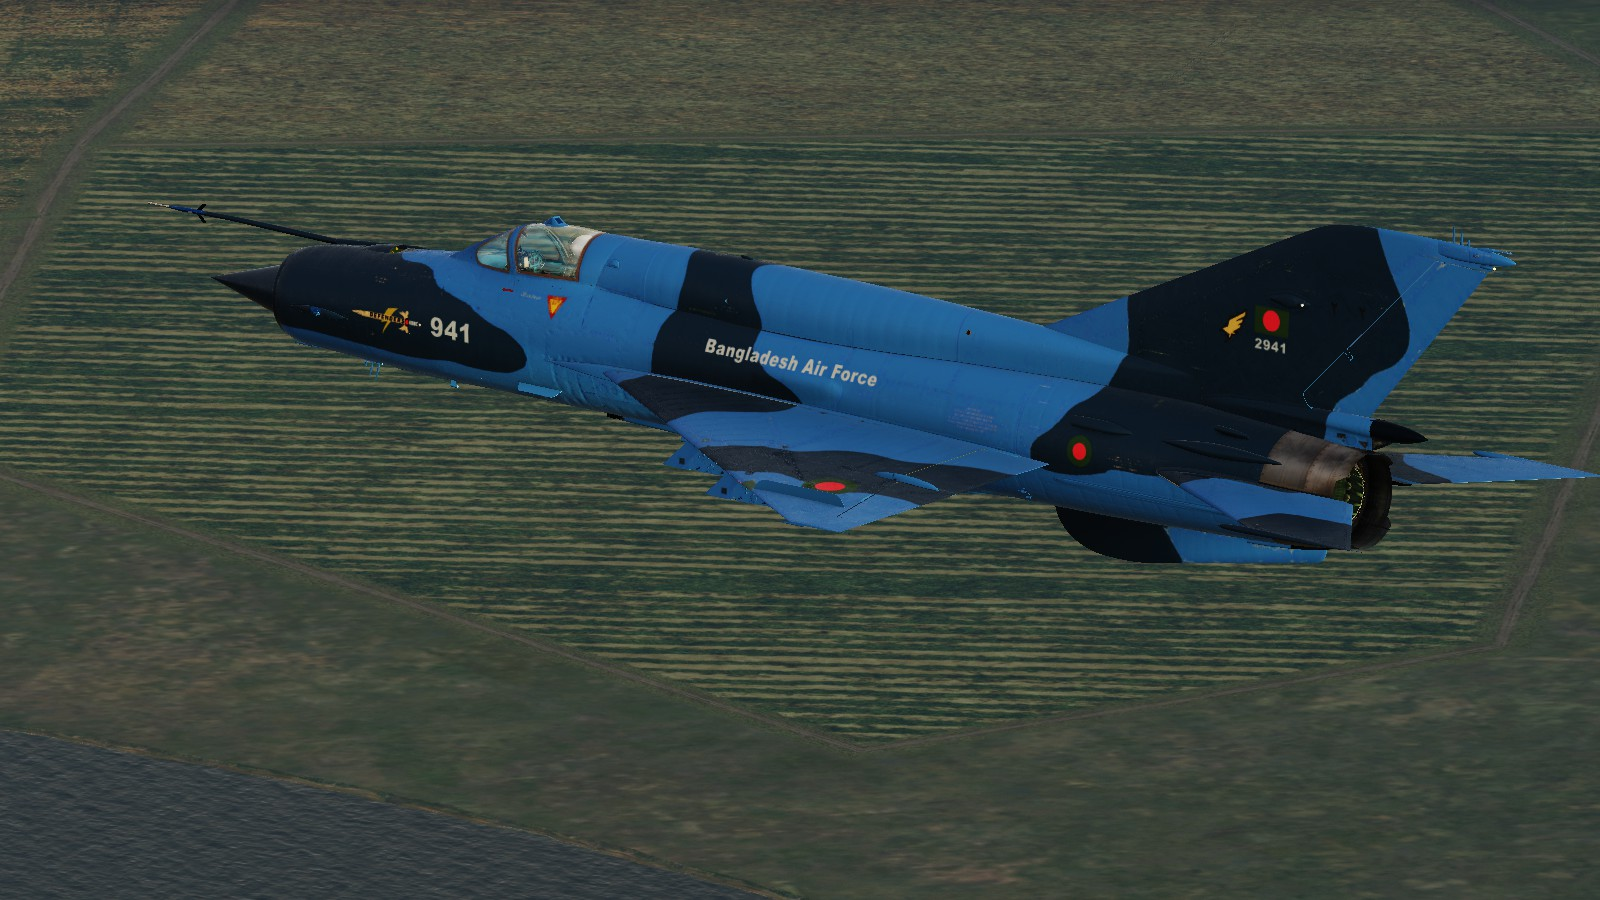 Bangladesh Air Force Mig-21(F-7) Blue camo